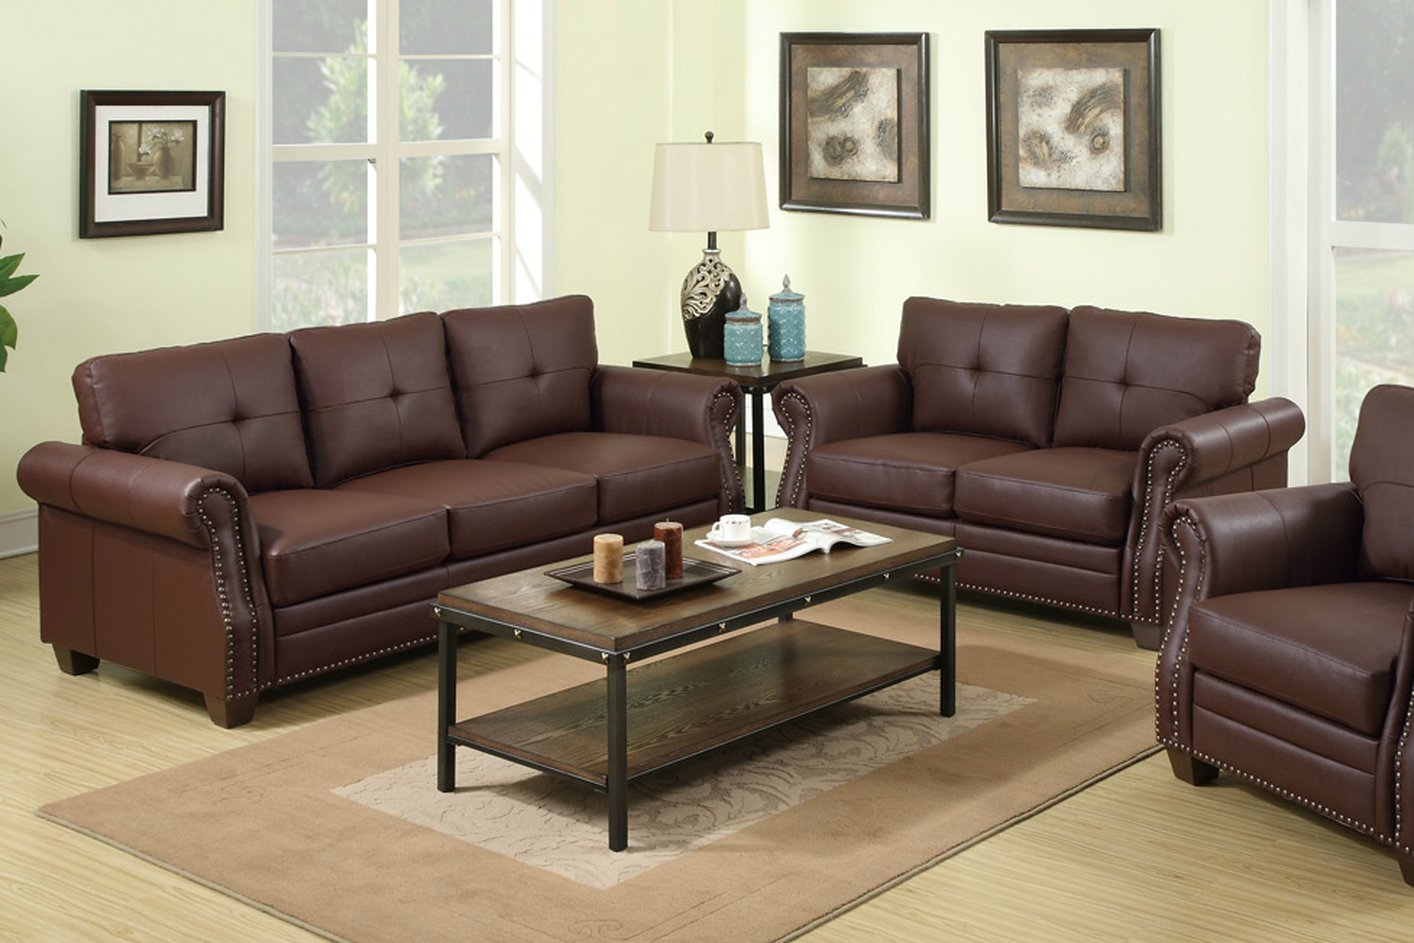 Poundex baron f7799 brown leather sofa and loveseat set for Leather sofa and loveseat set